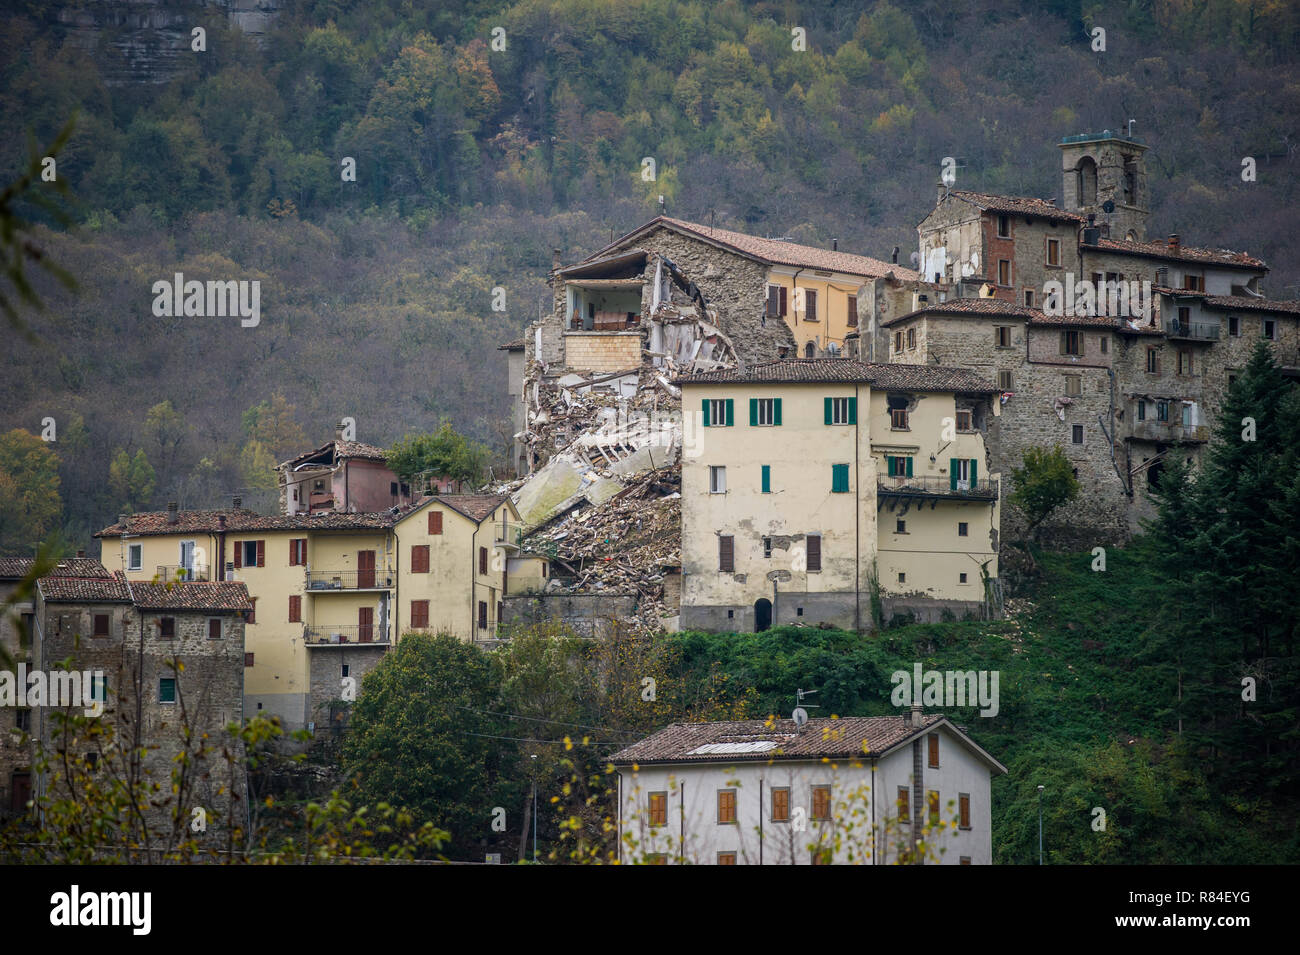 Earthquake in Amatrice - Stock Image